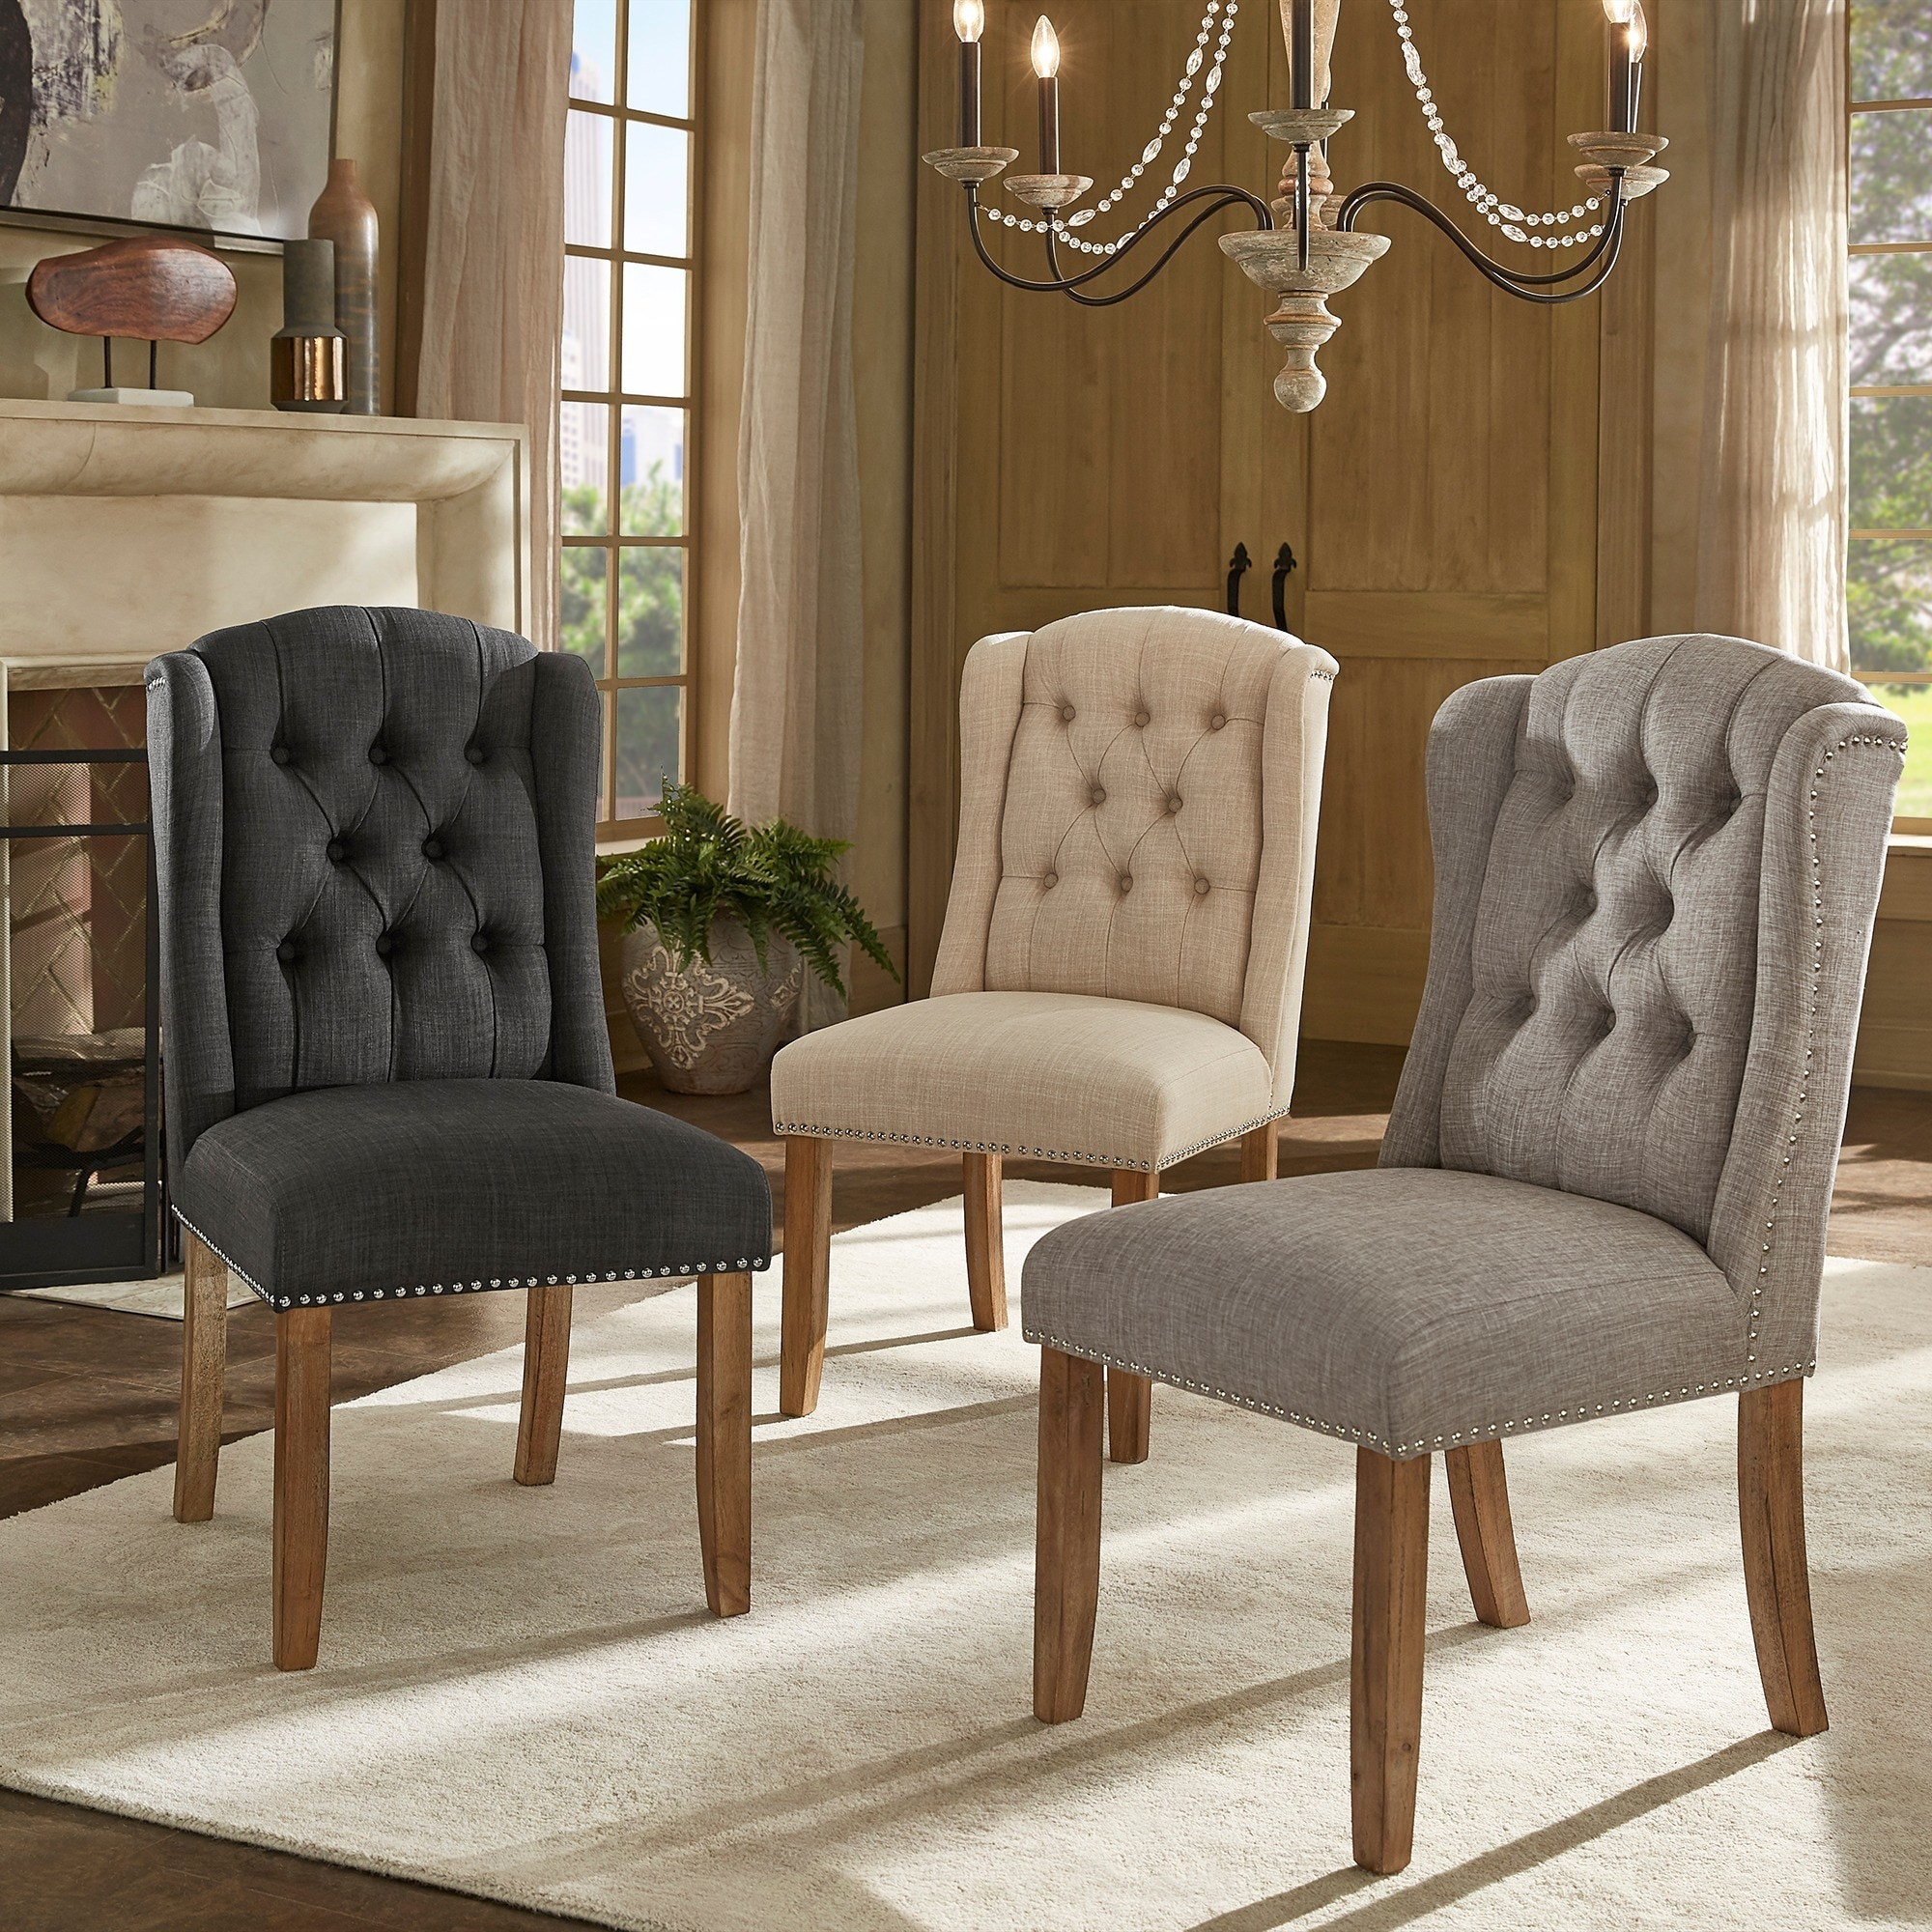 tufted wingback dining chair swingasan hanging chairs with casters